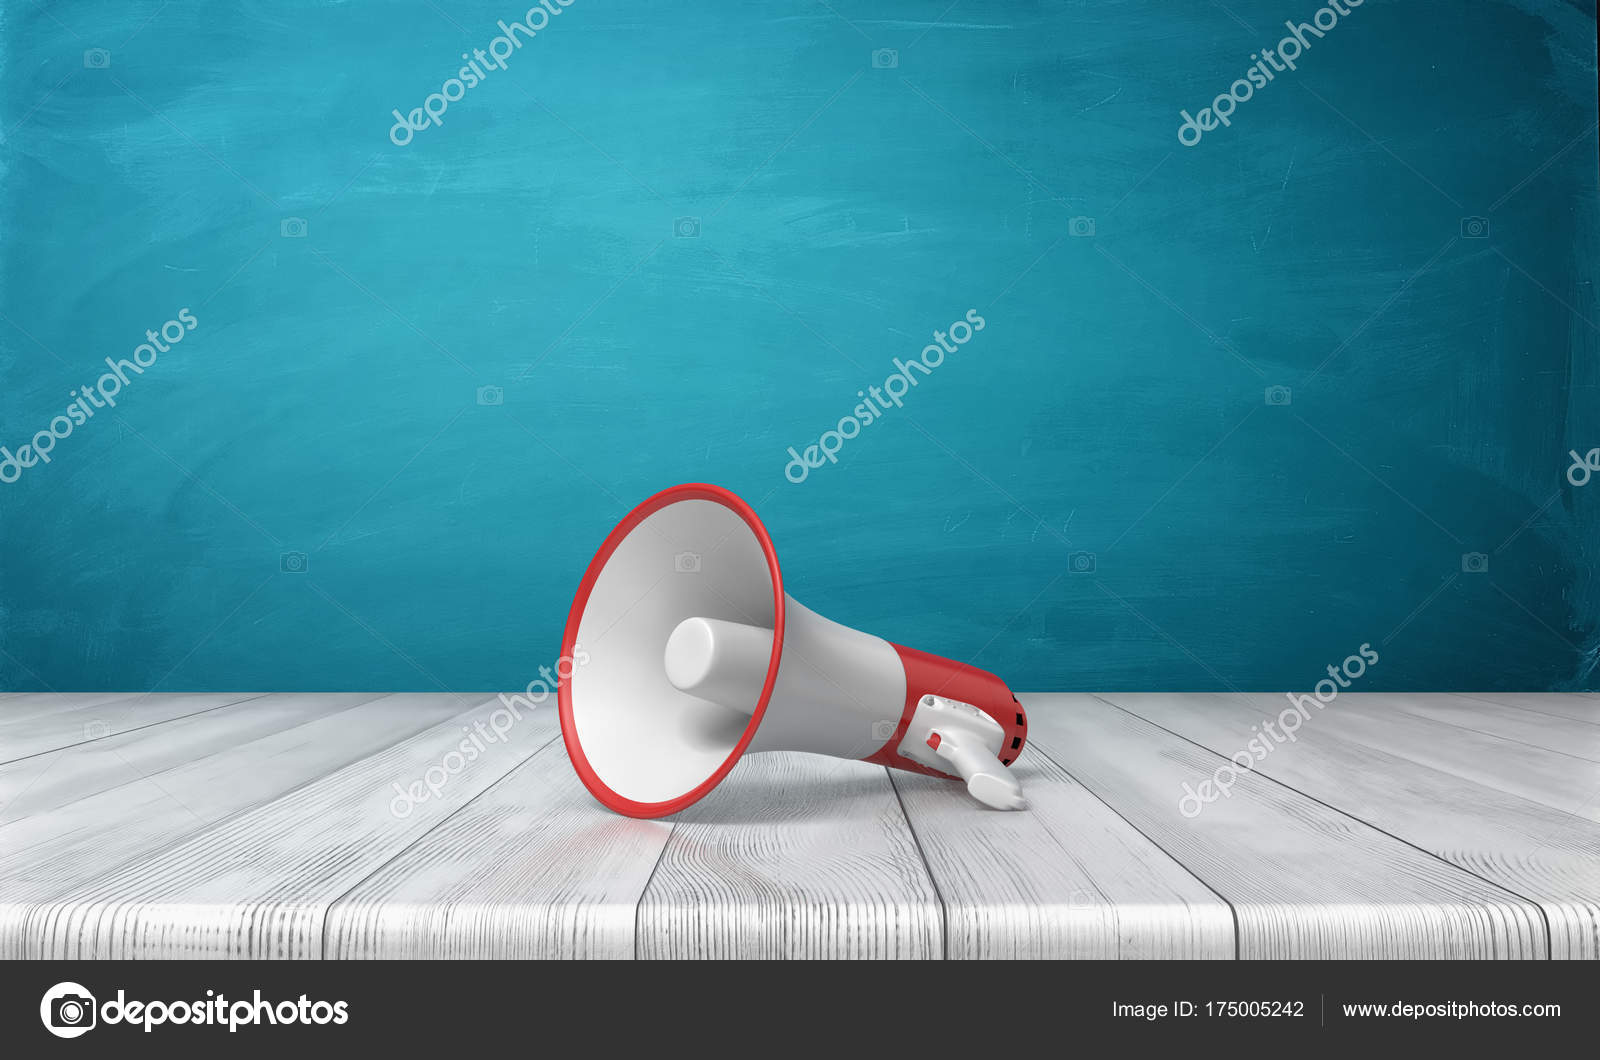 3d rendering of a single red and white megaphone lying down on a